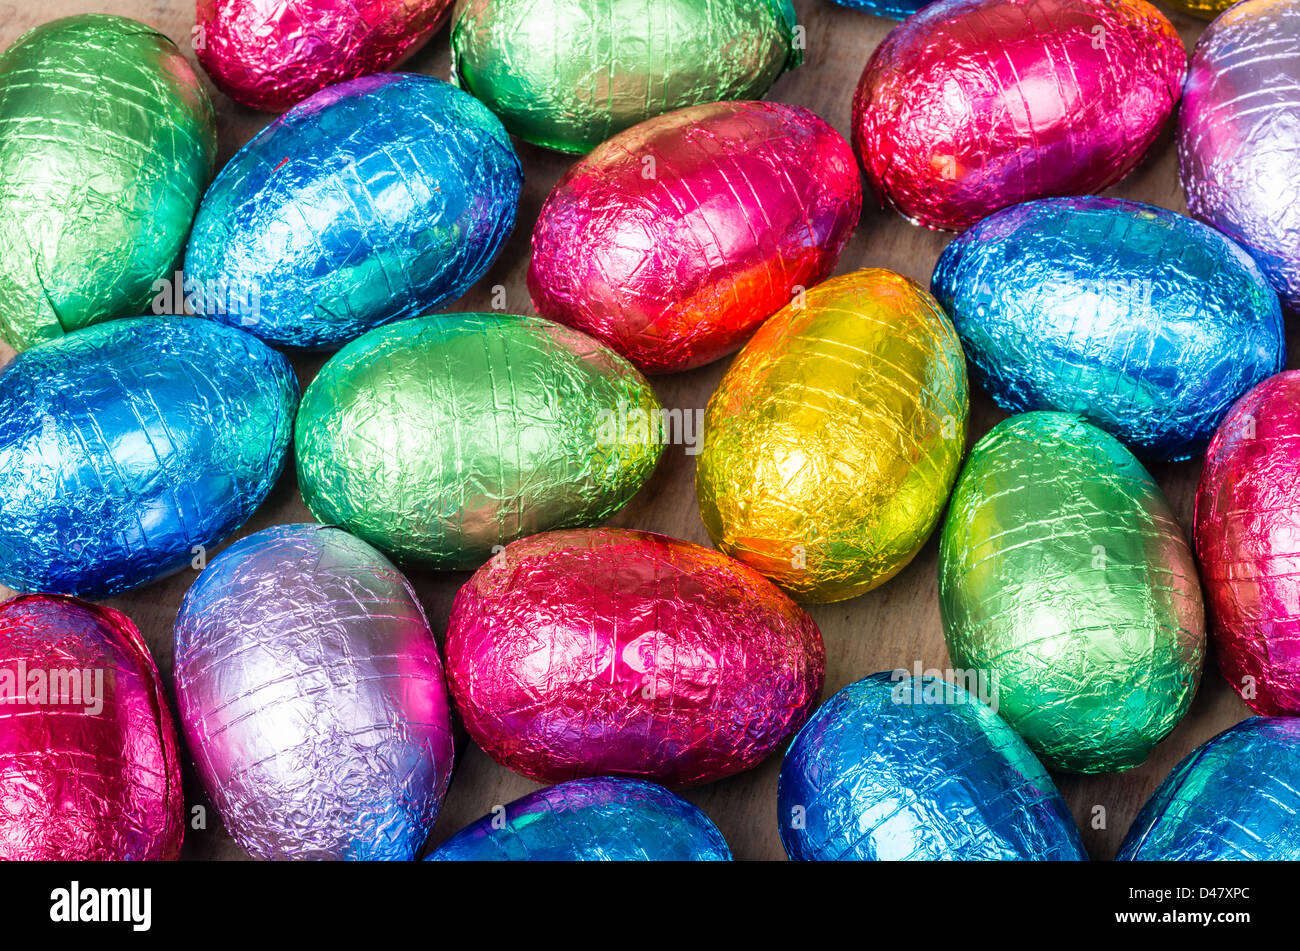 Display of foil wrapped colorful Easter eggs - Stock Image